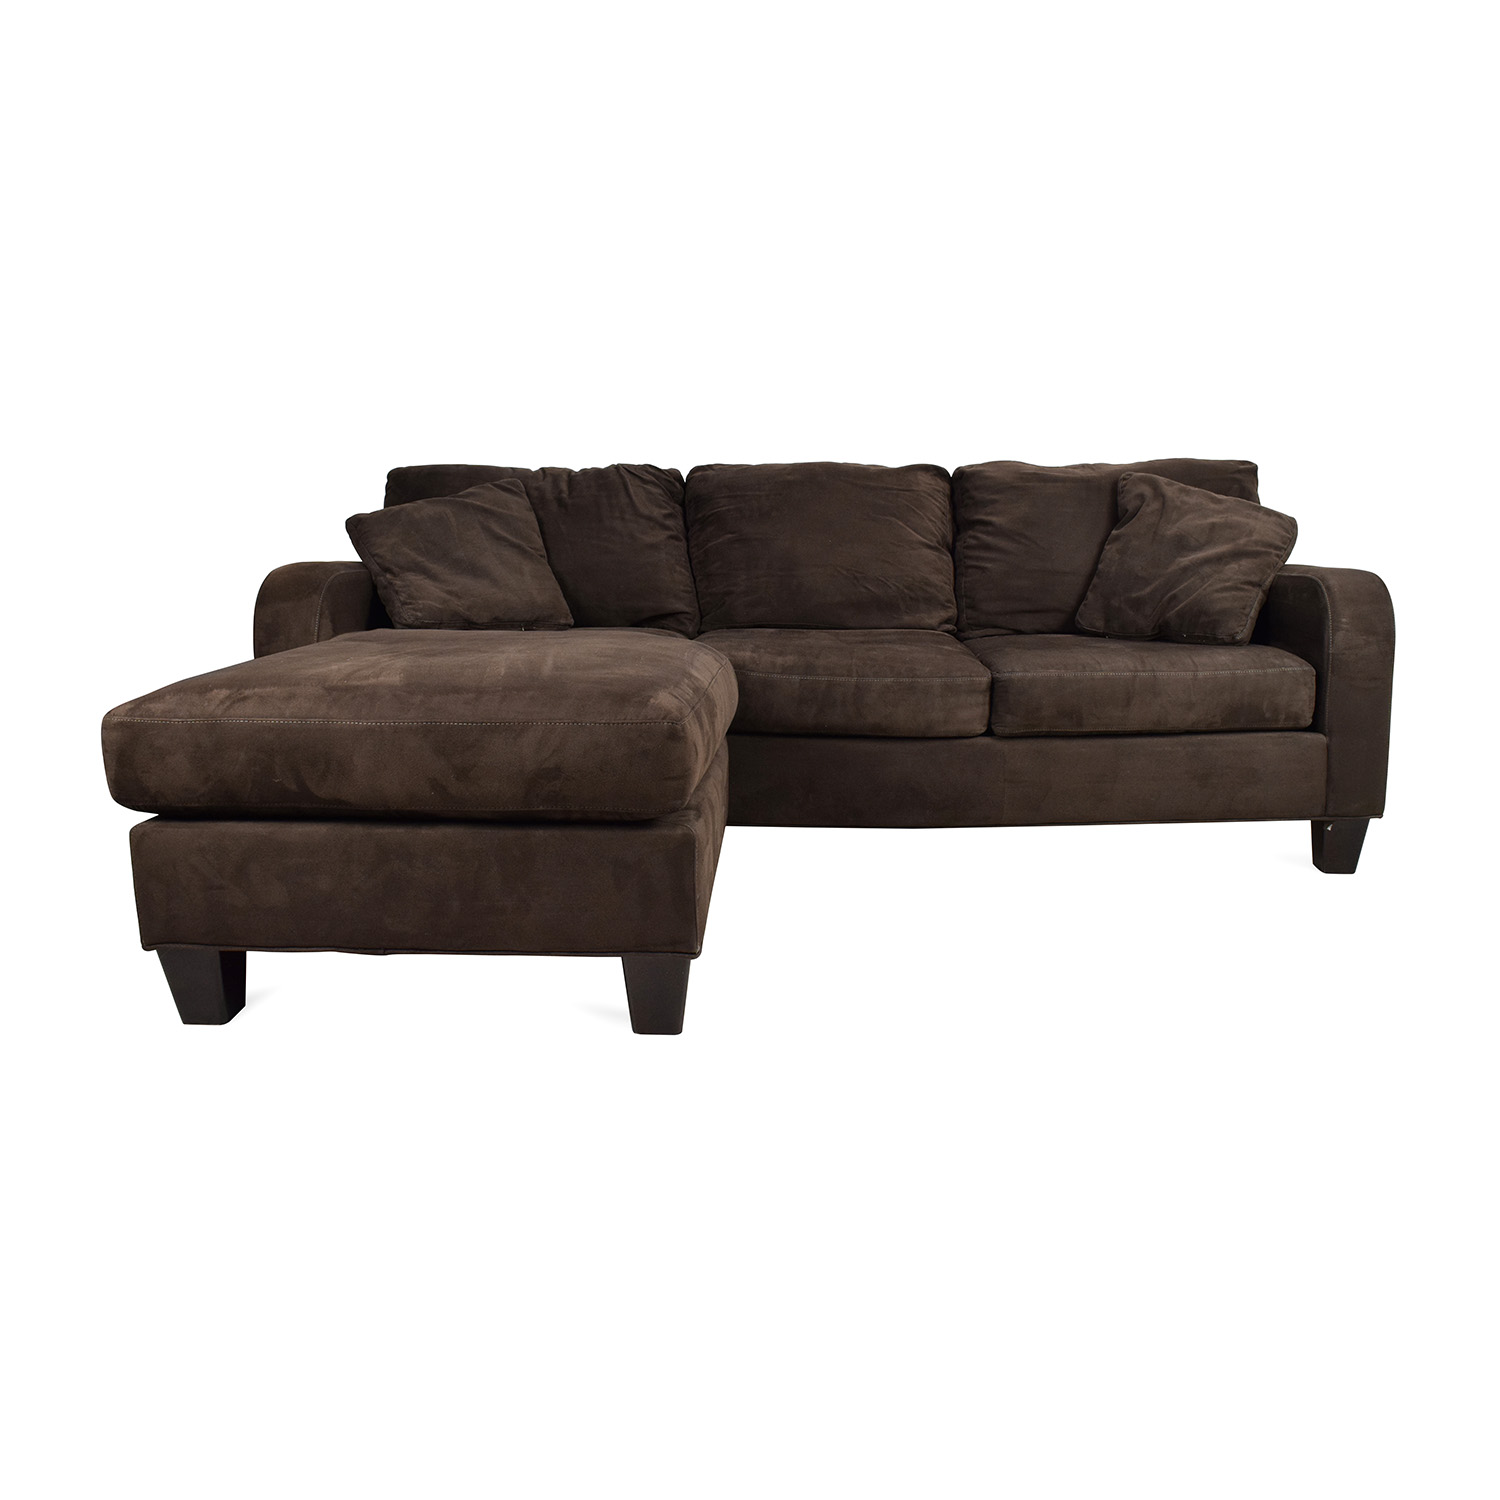 Cindy Crawford Home Cindy Crawford Bailey Microfiber Chaise Sofa coupon